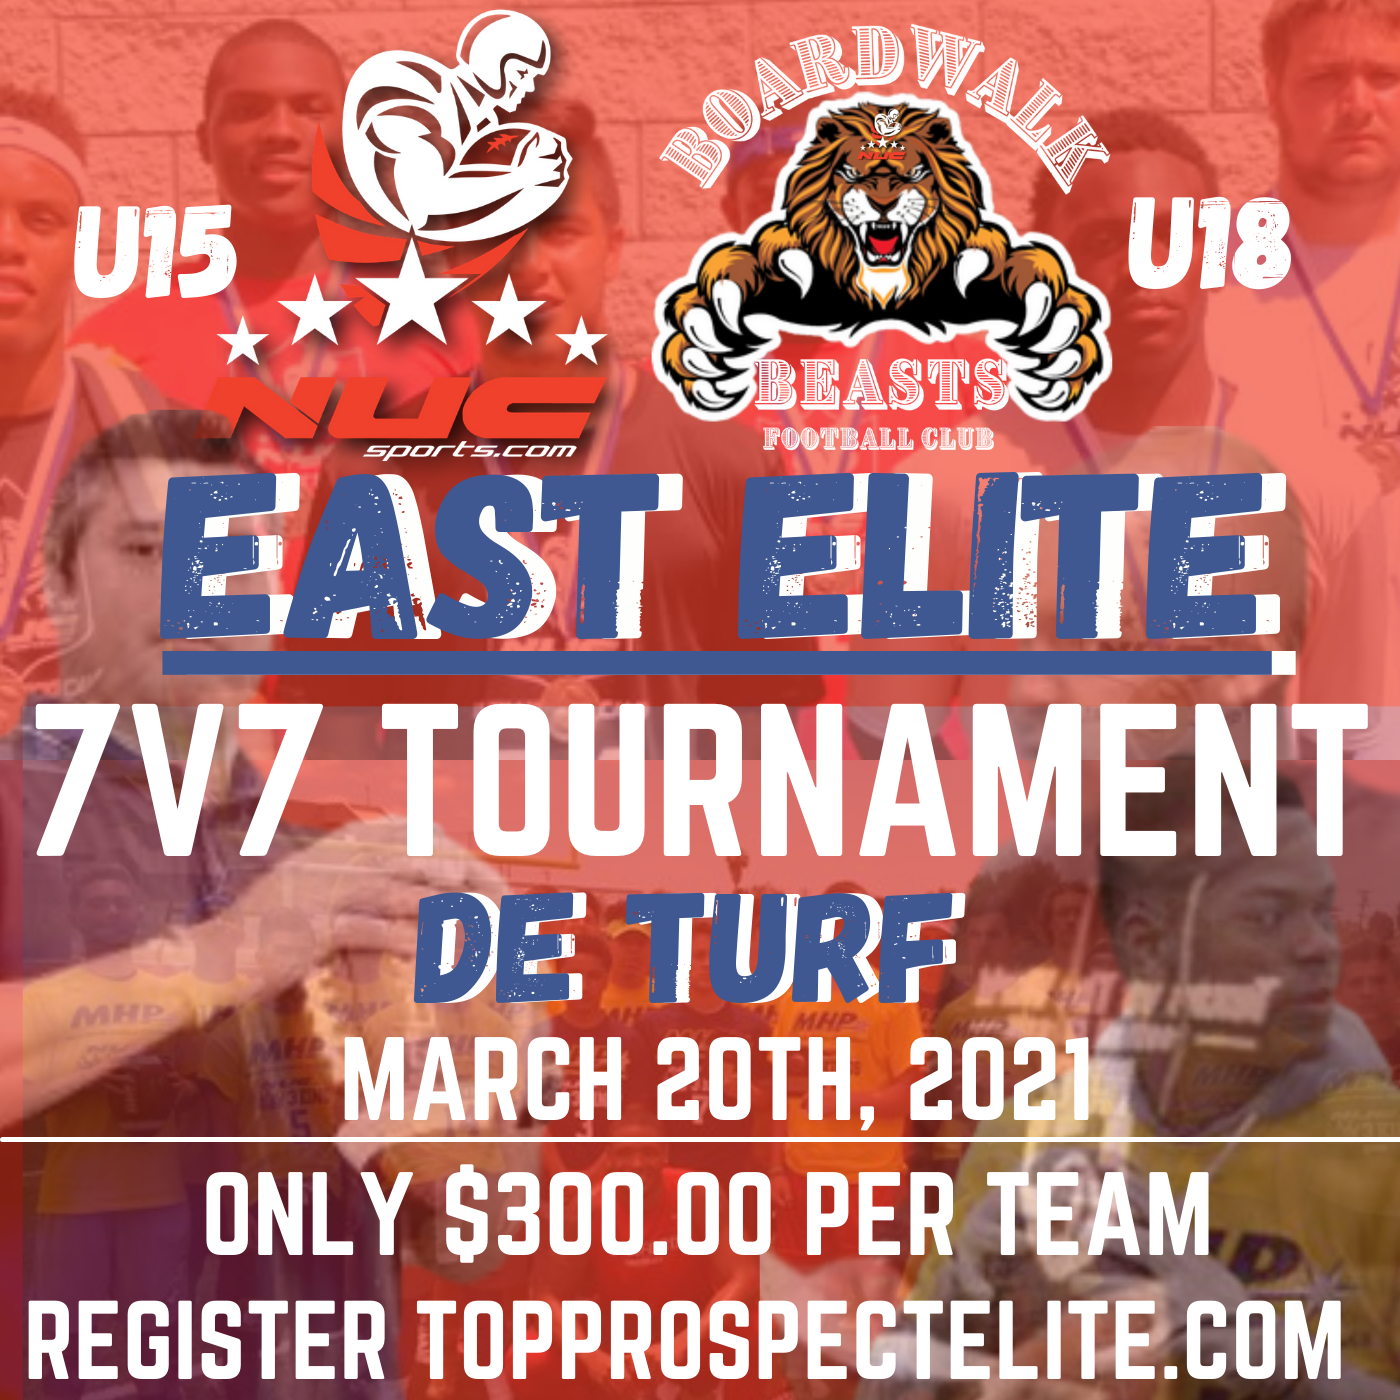 East Elite 7v7 Tournament for U15 and U18